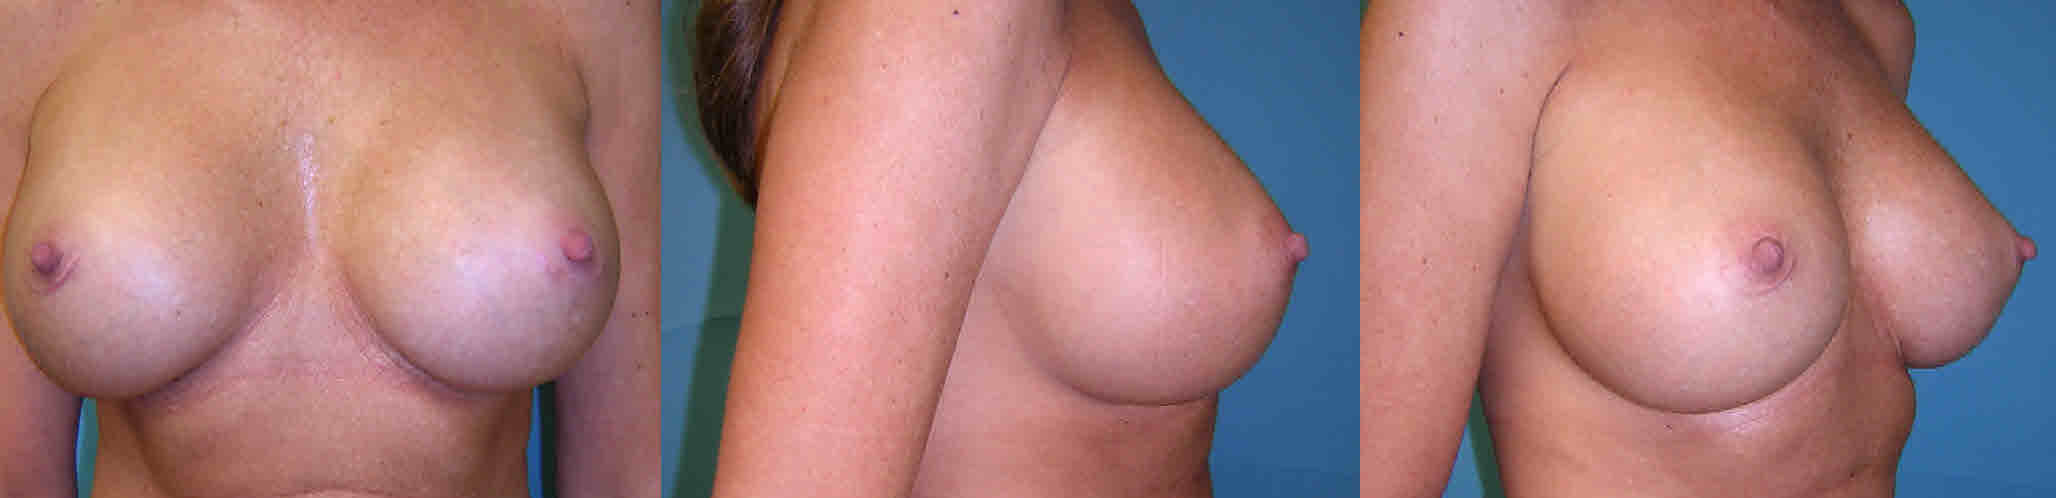 Breast implants add volume to existing breast tissue to create a fuller chest Implant options include silicone or saline rounded or shaped and textured